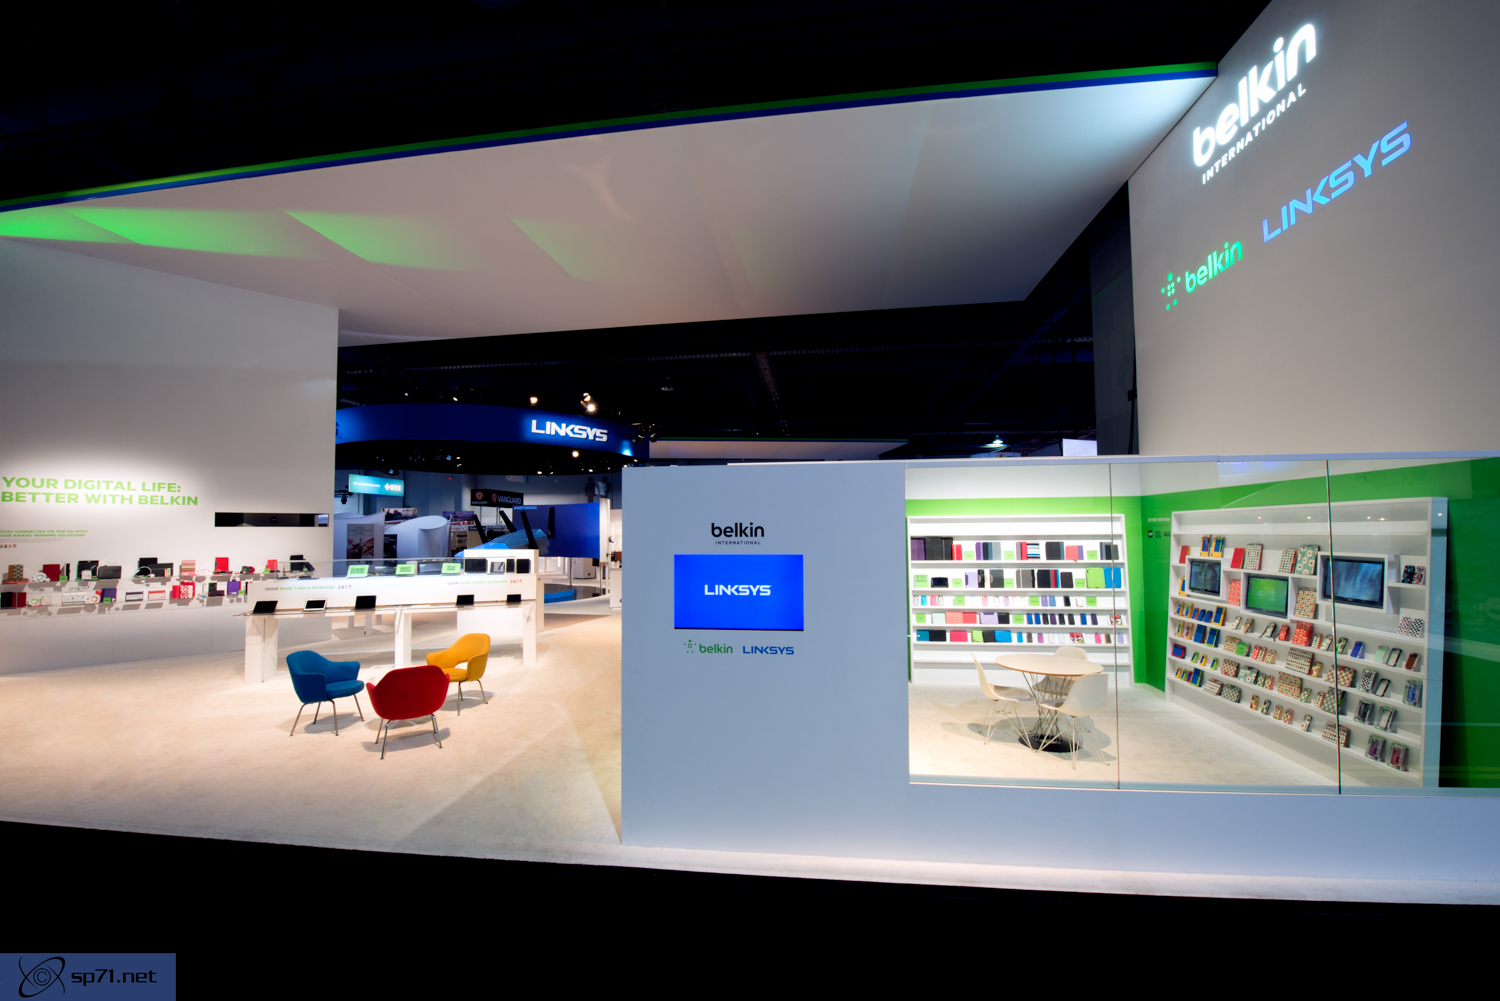 �timothydeal_ces2014_Belkin_photography_source-37.jpg